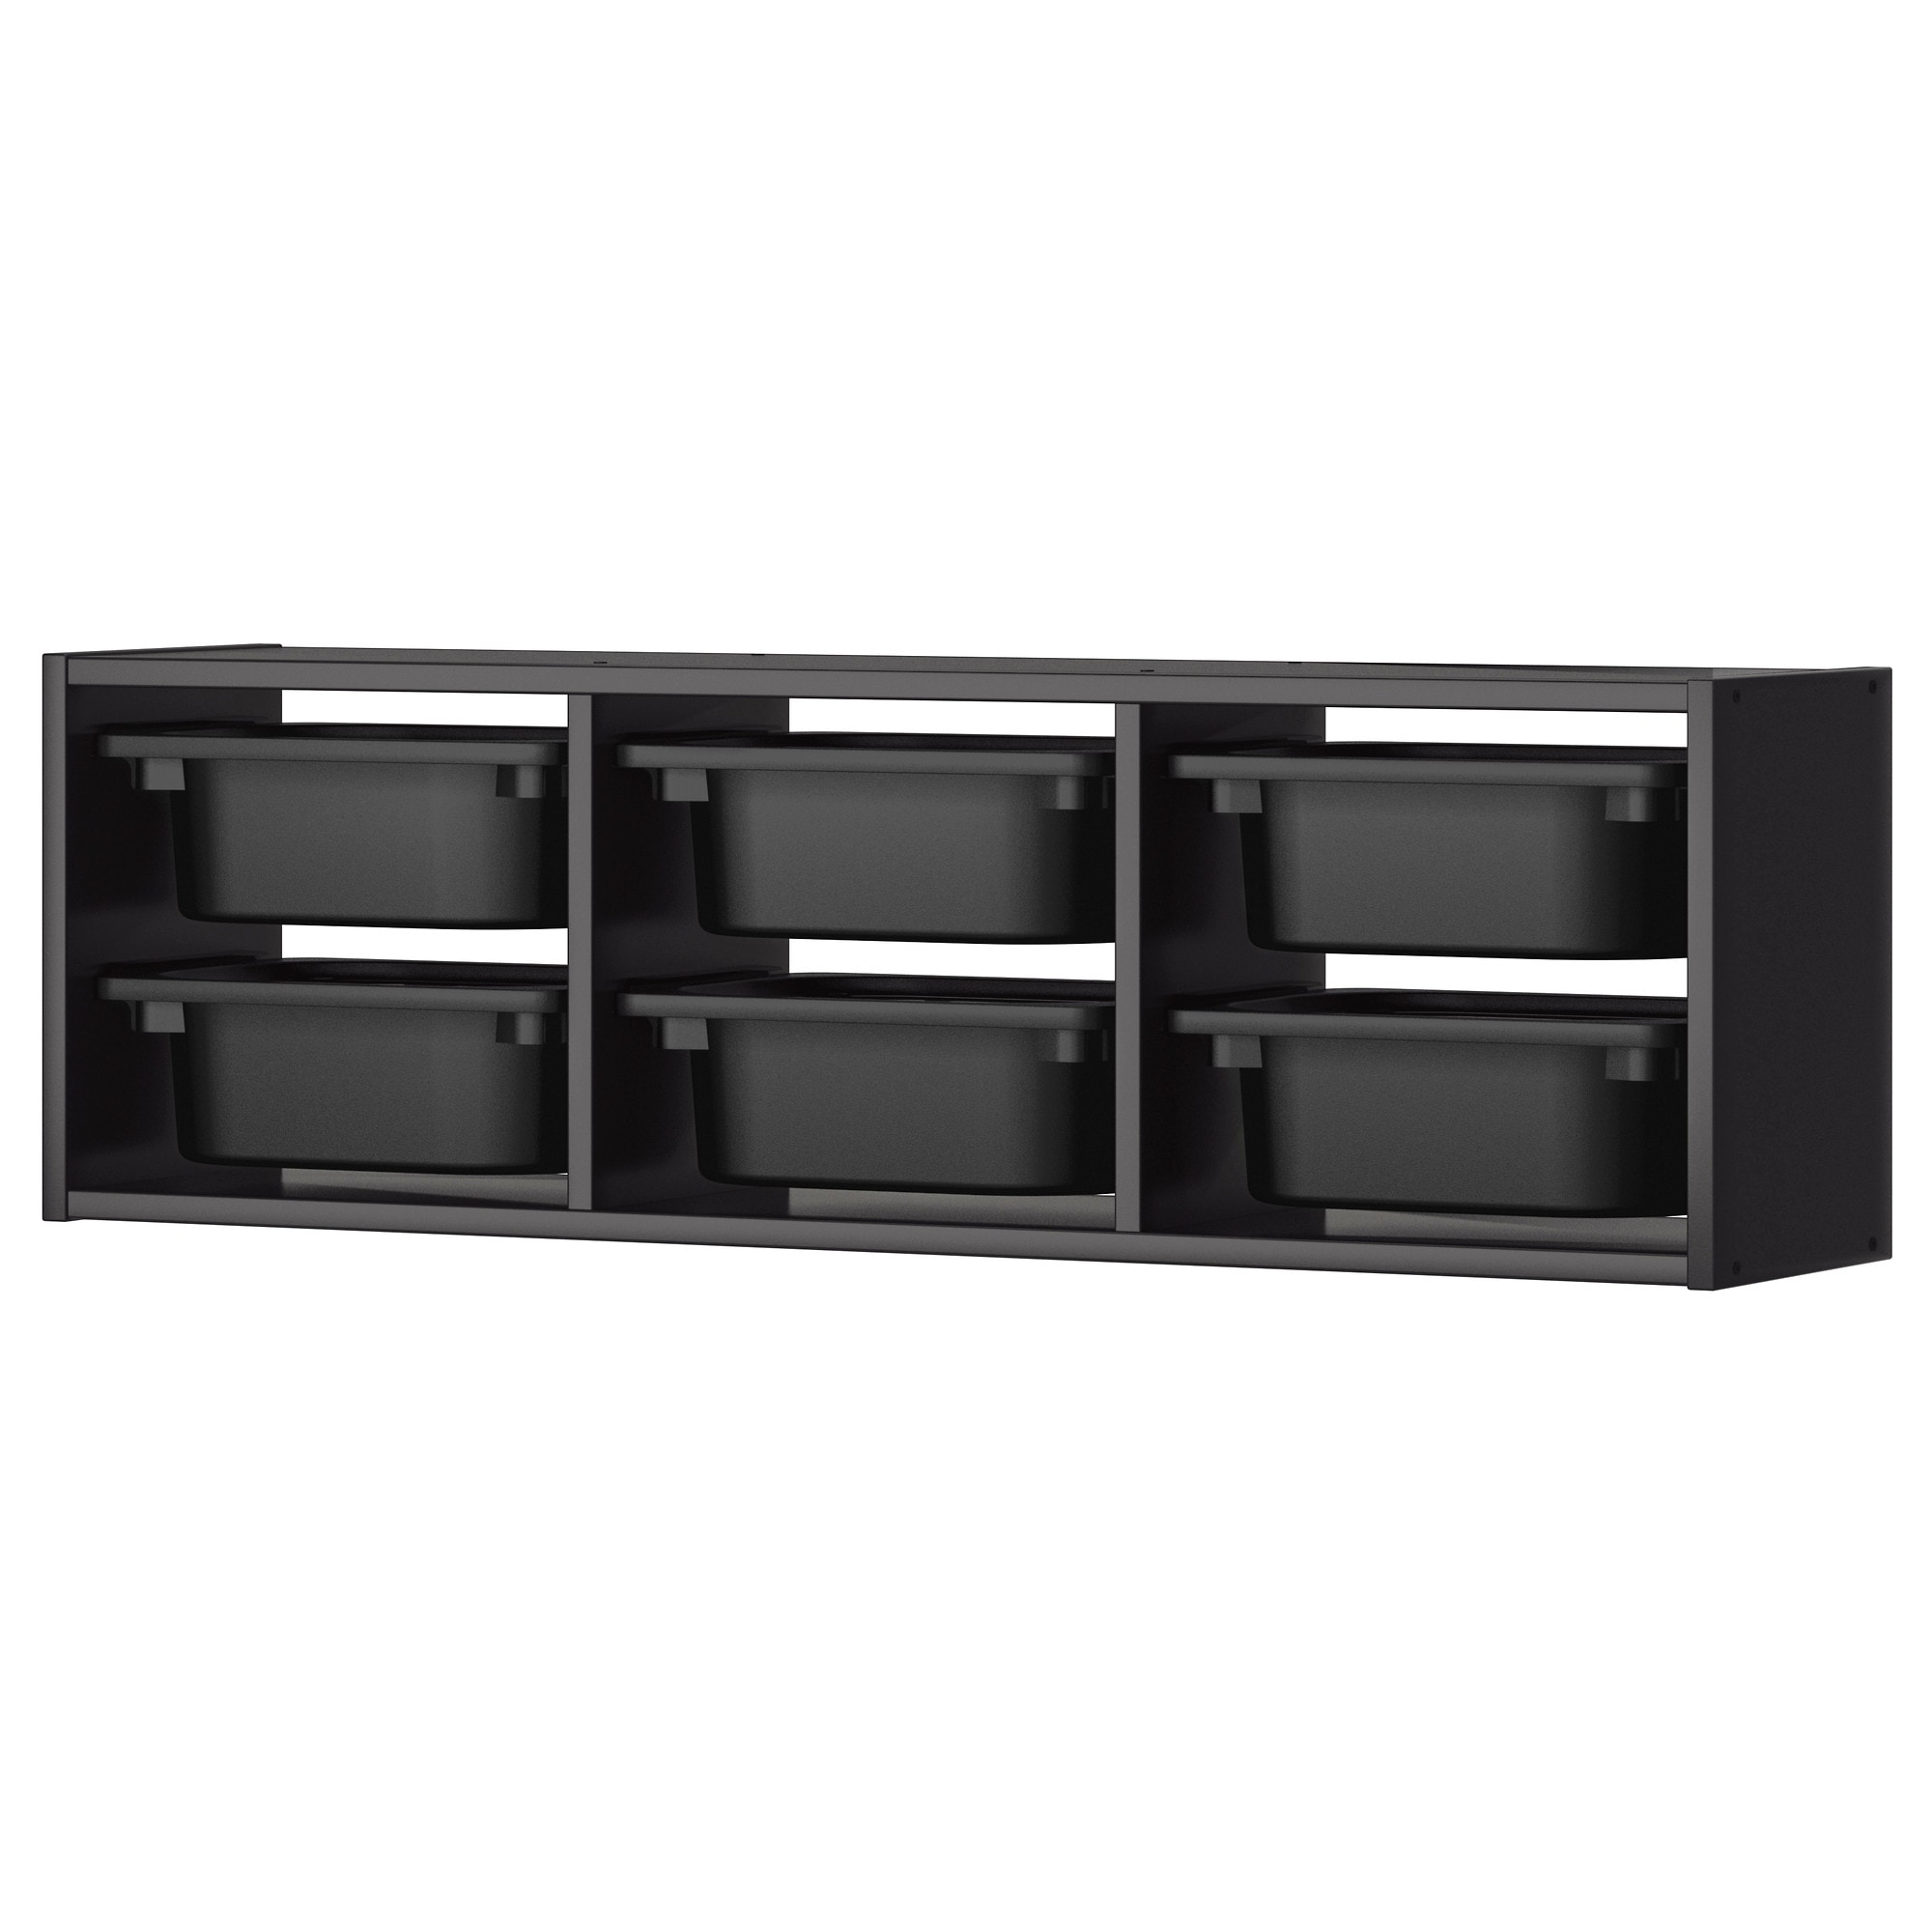 trofast wall storage black width 39 depth 8 14 nice wall hanging office organizer 4